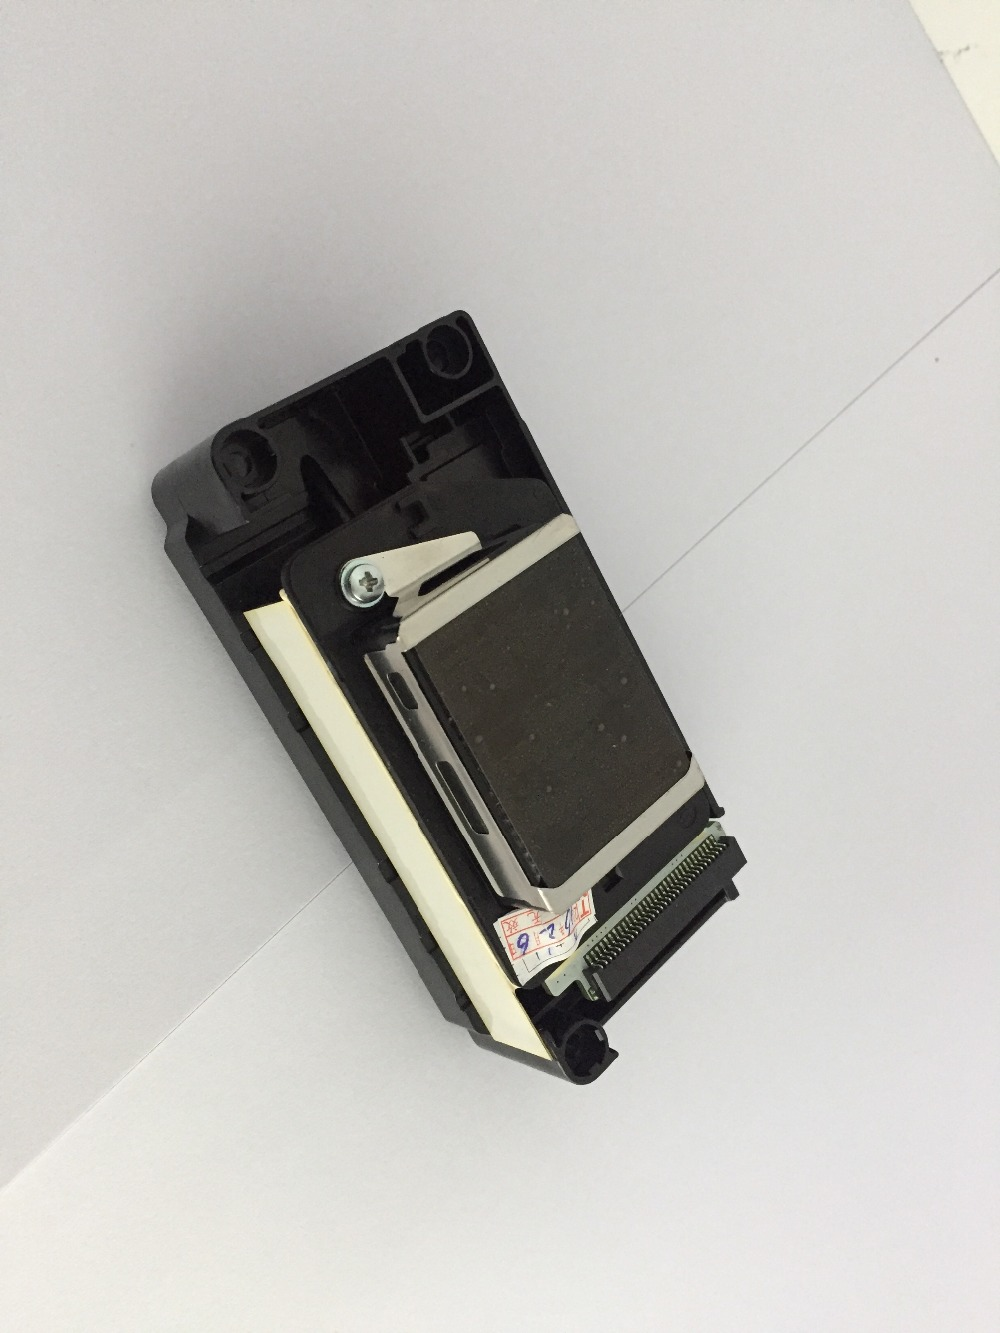 (F152000) Original DX5 Water-Based print head for Epson R800 printer printhead original dx4 printer cap station for roland xj 740 640 both water based and solvent based capping station top